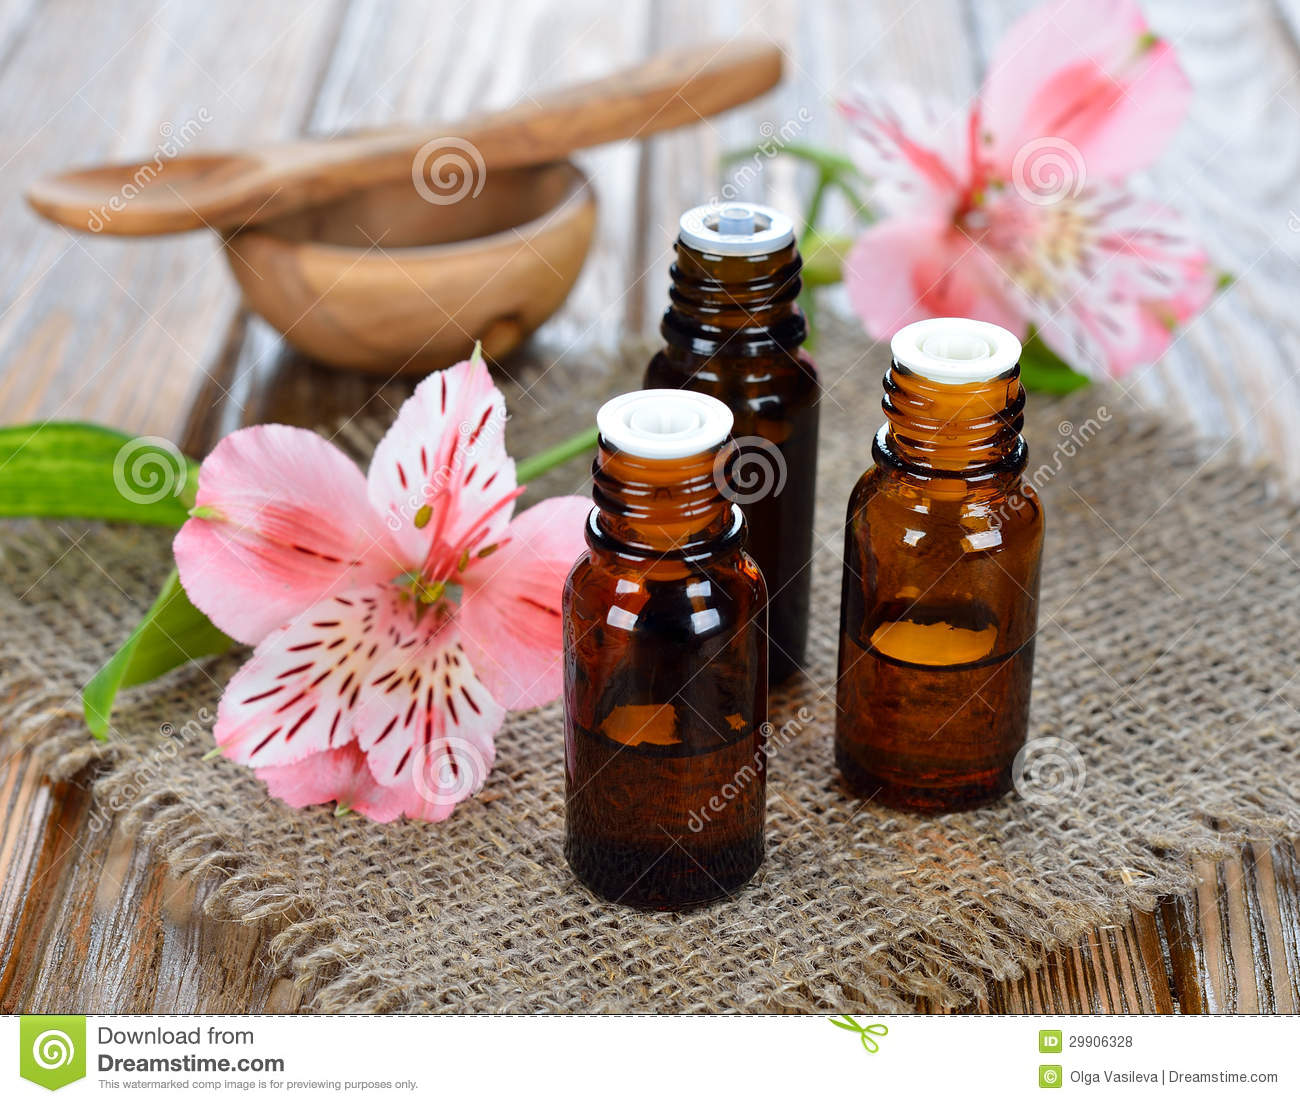 how to make flower essential oil